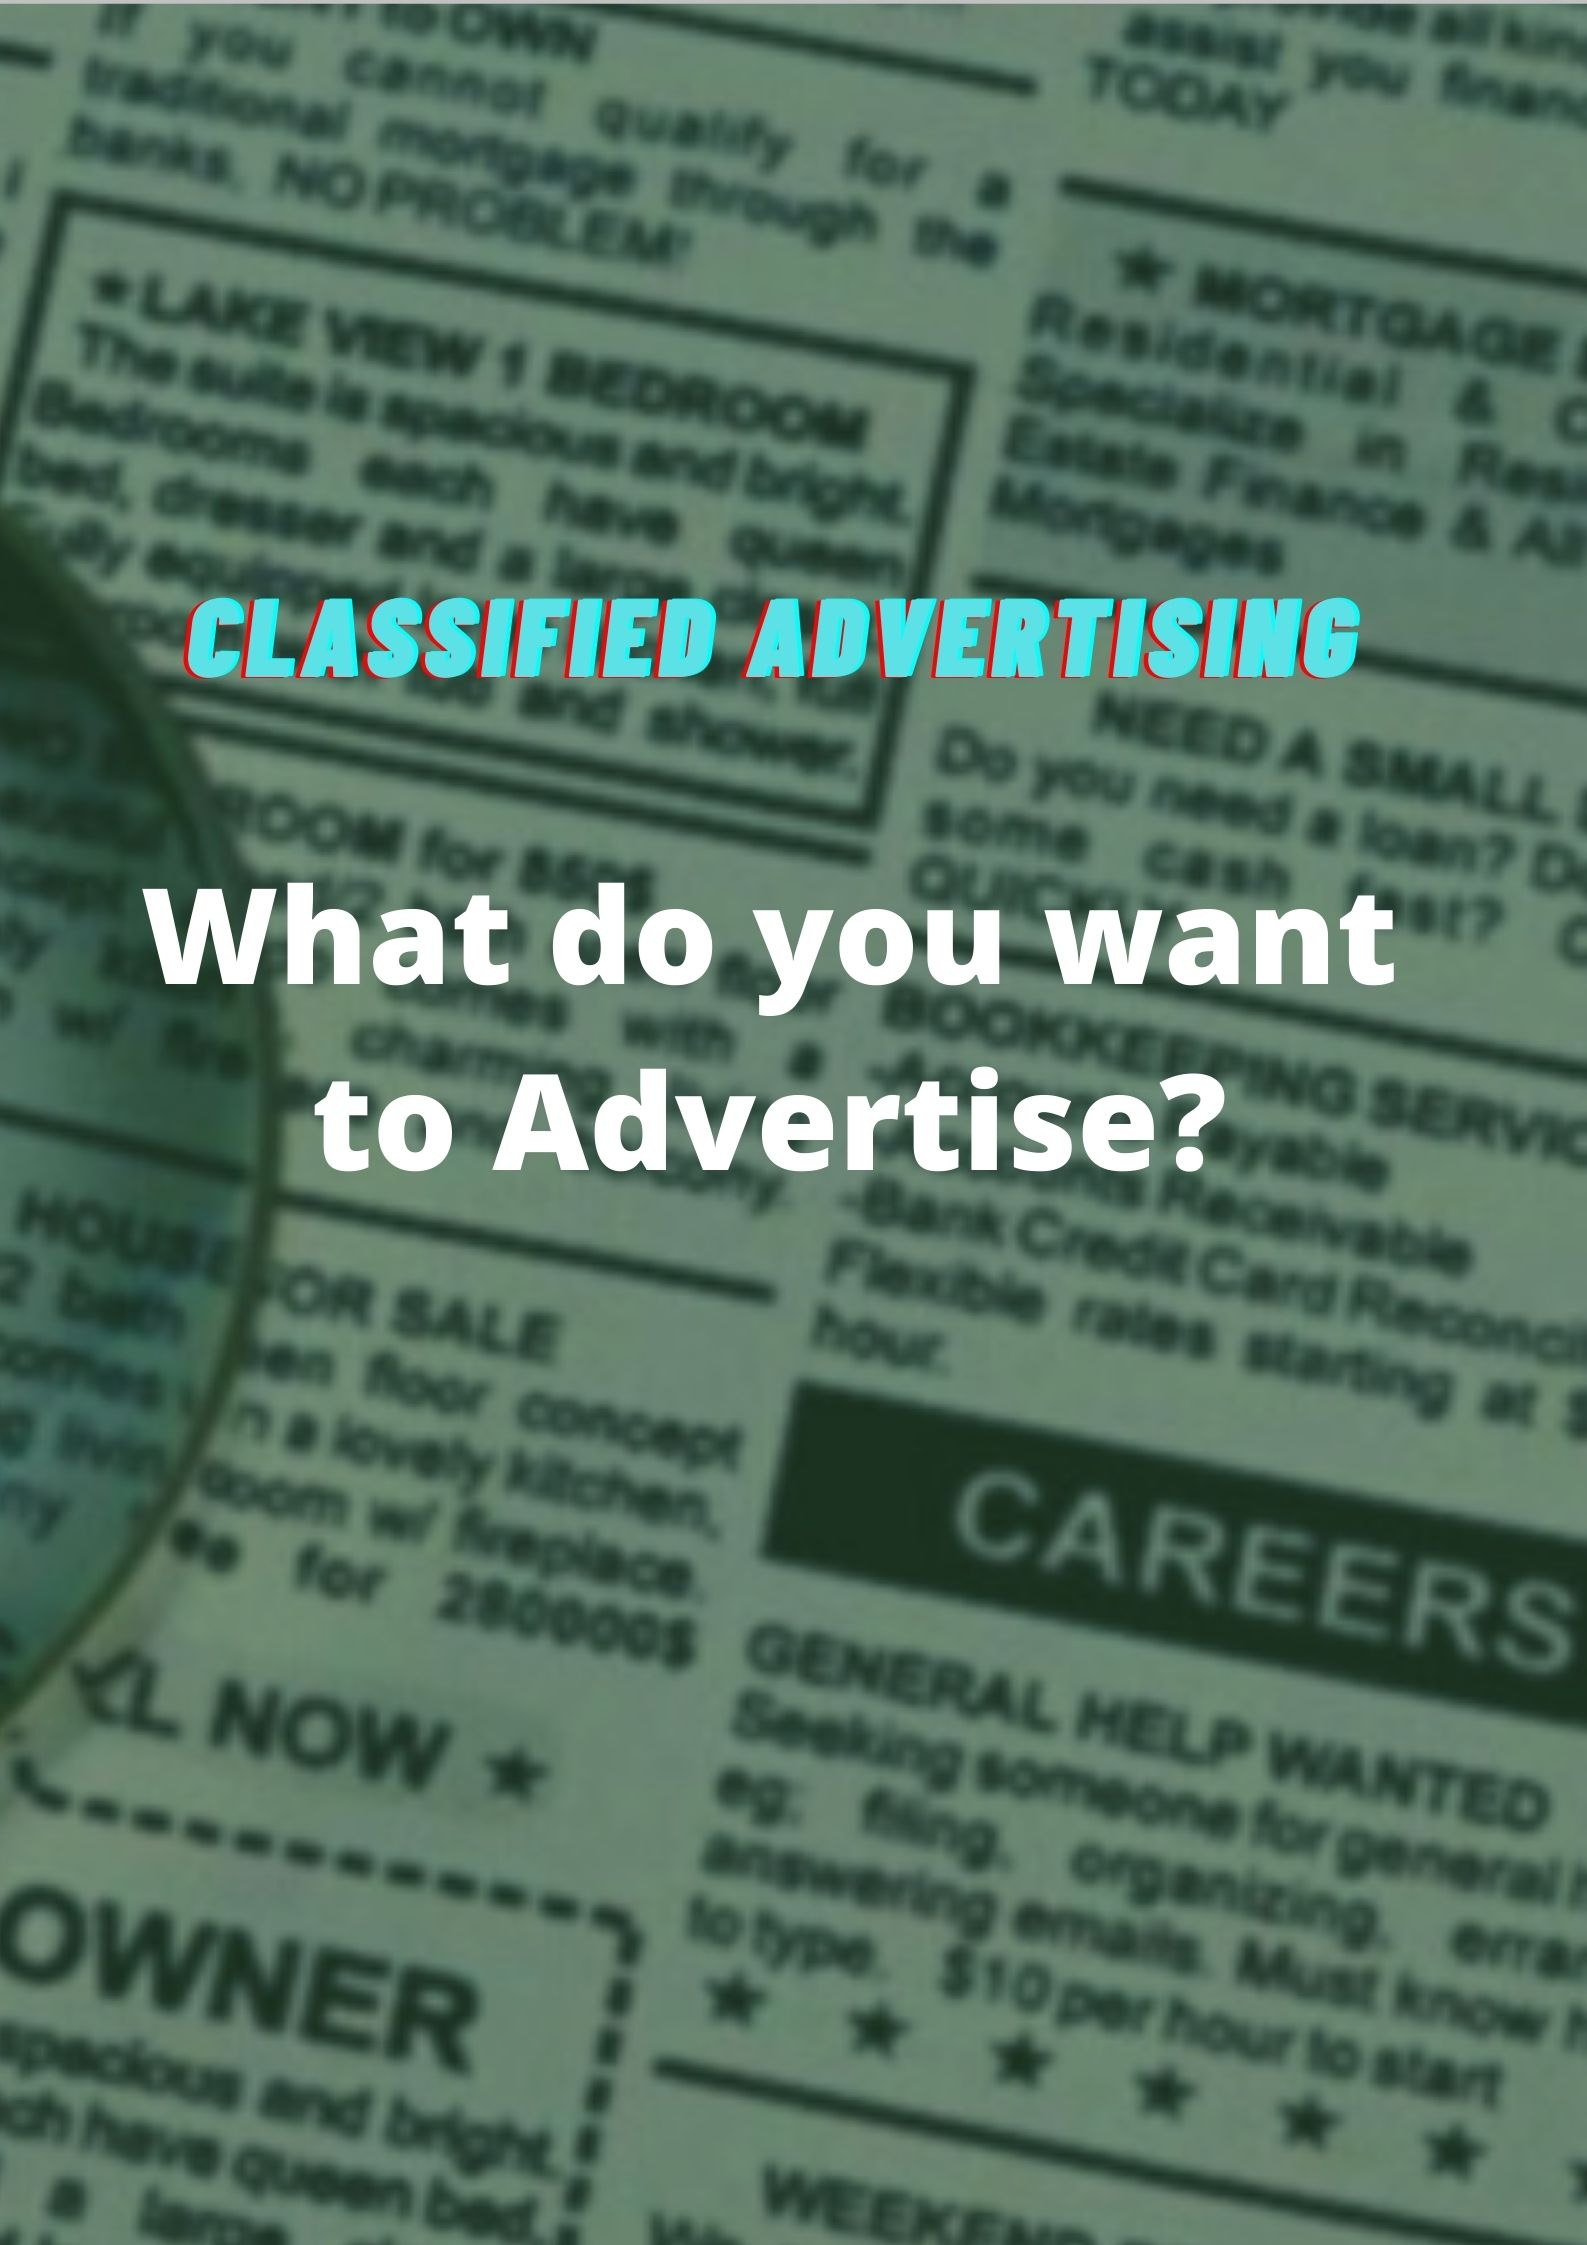 What do you want to Advertise